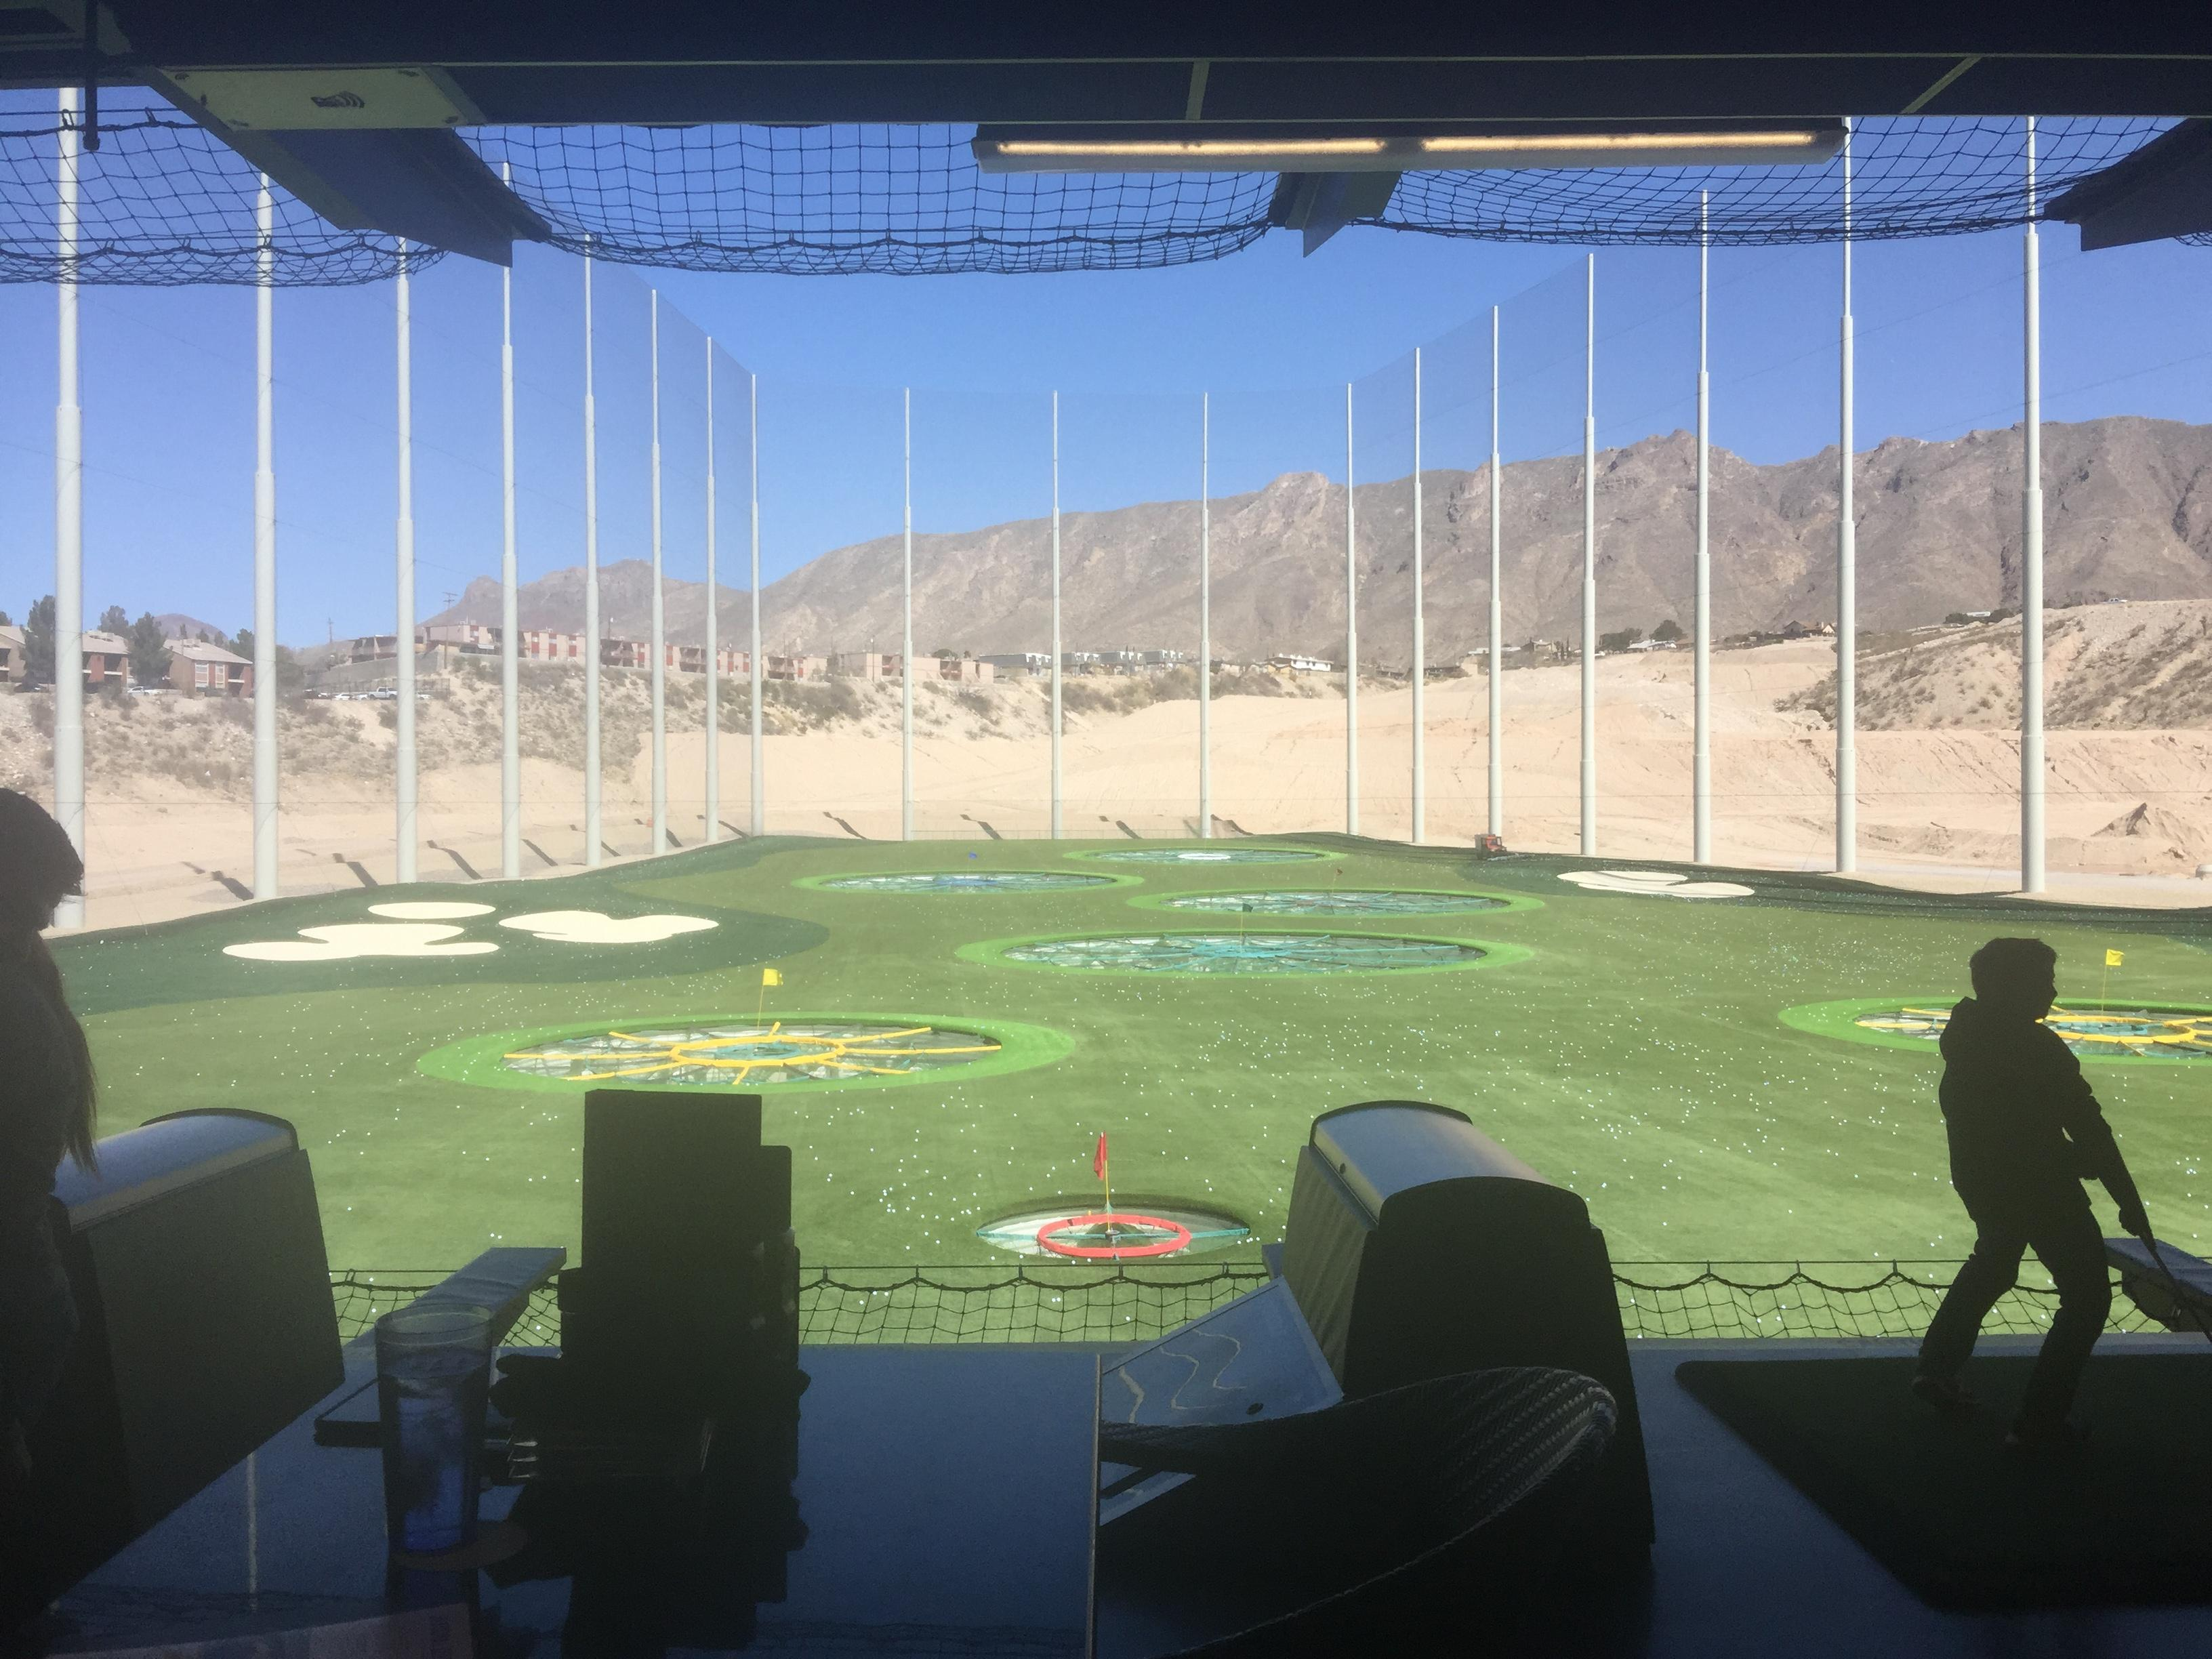 Top Golf El Paso restaurant and driving range. $35 per hour for the bays. 2018.